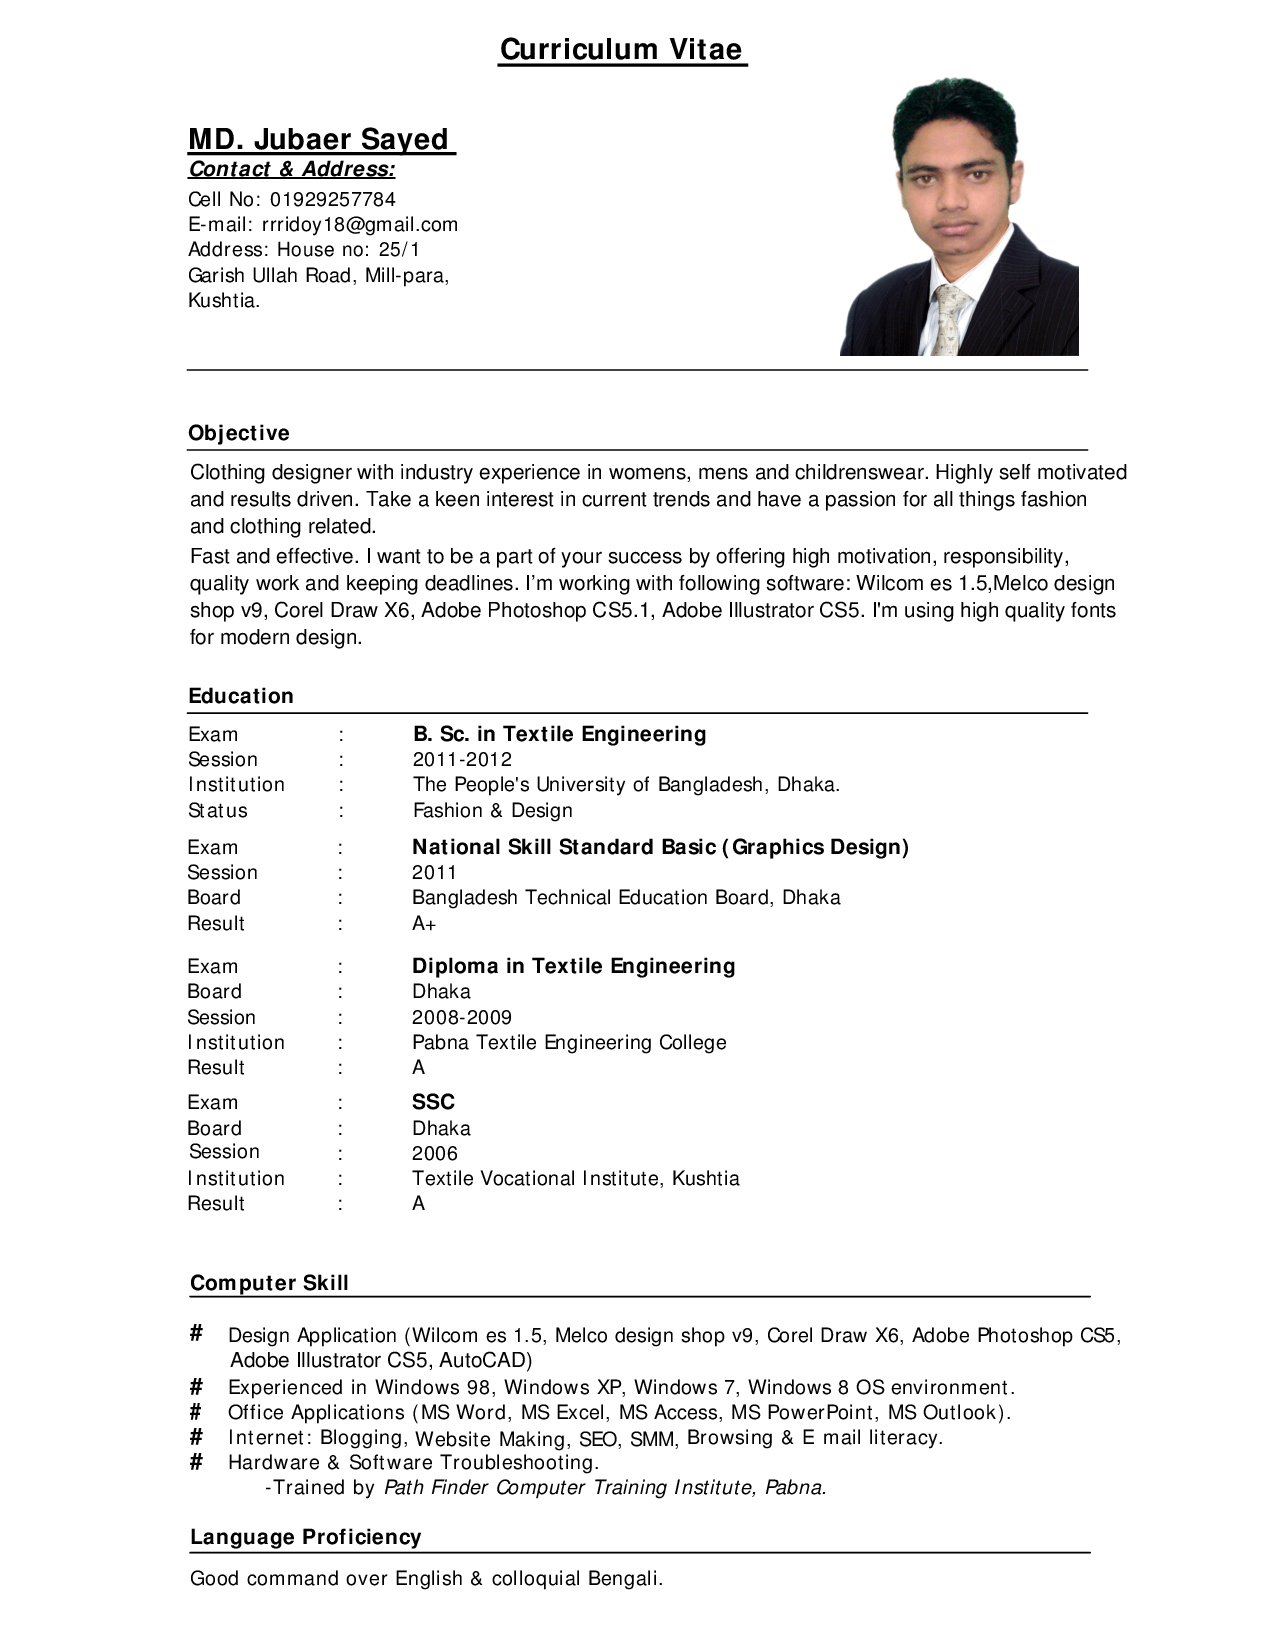 Good curriculum vitae samples